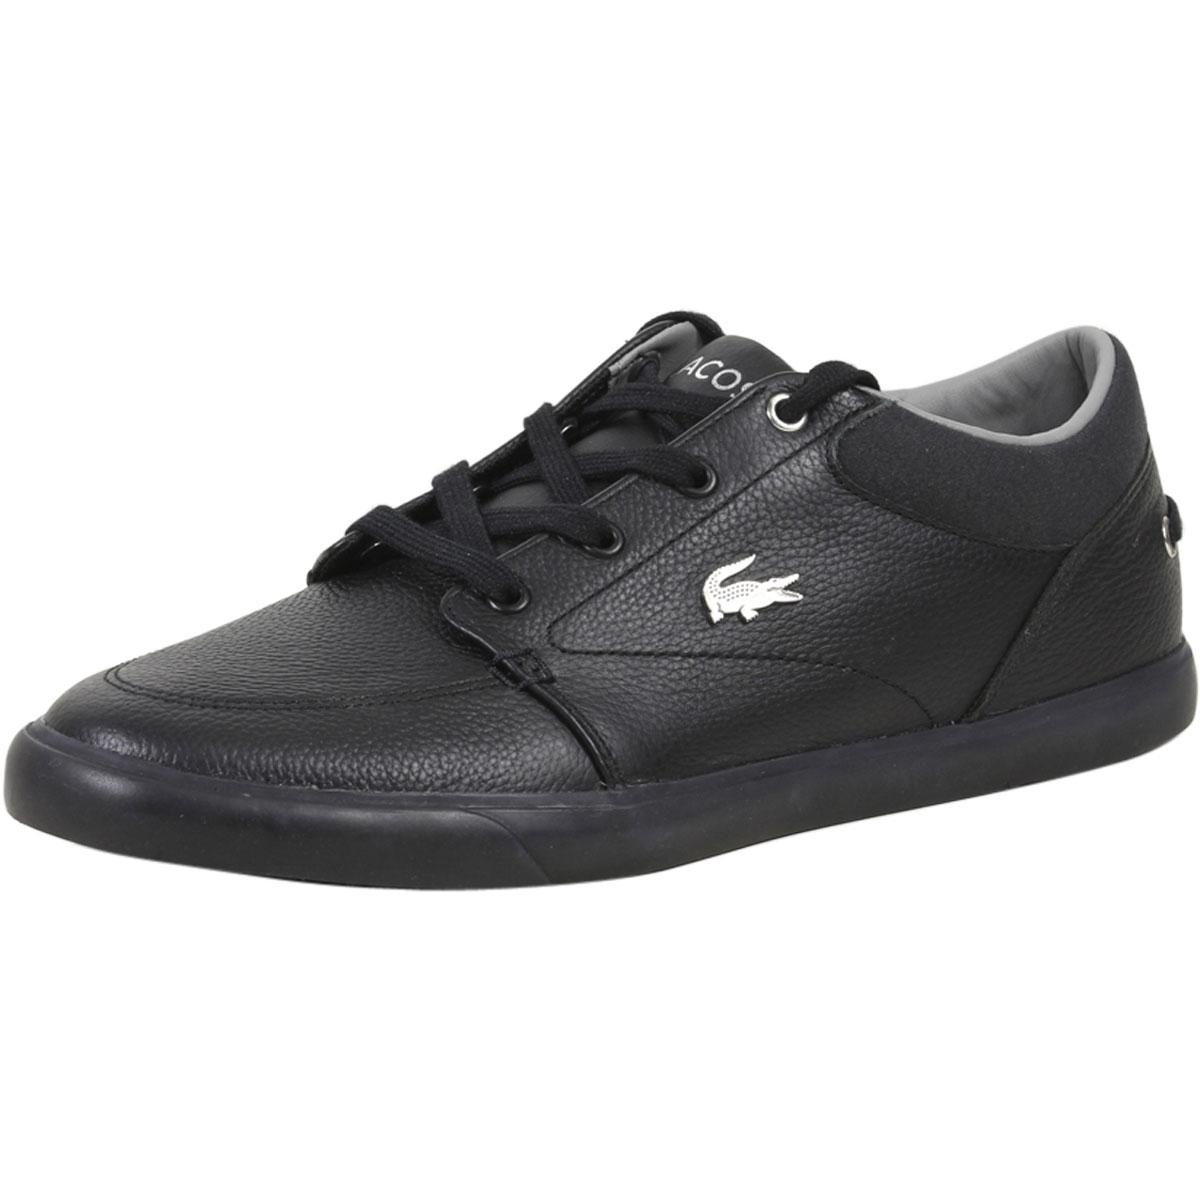 225482905 Lacoste Men s Bayliss-118 Sneakers Shoes by Lacoste. Touch to zoom